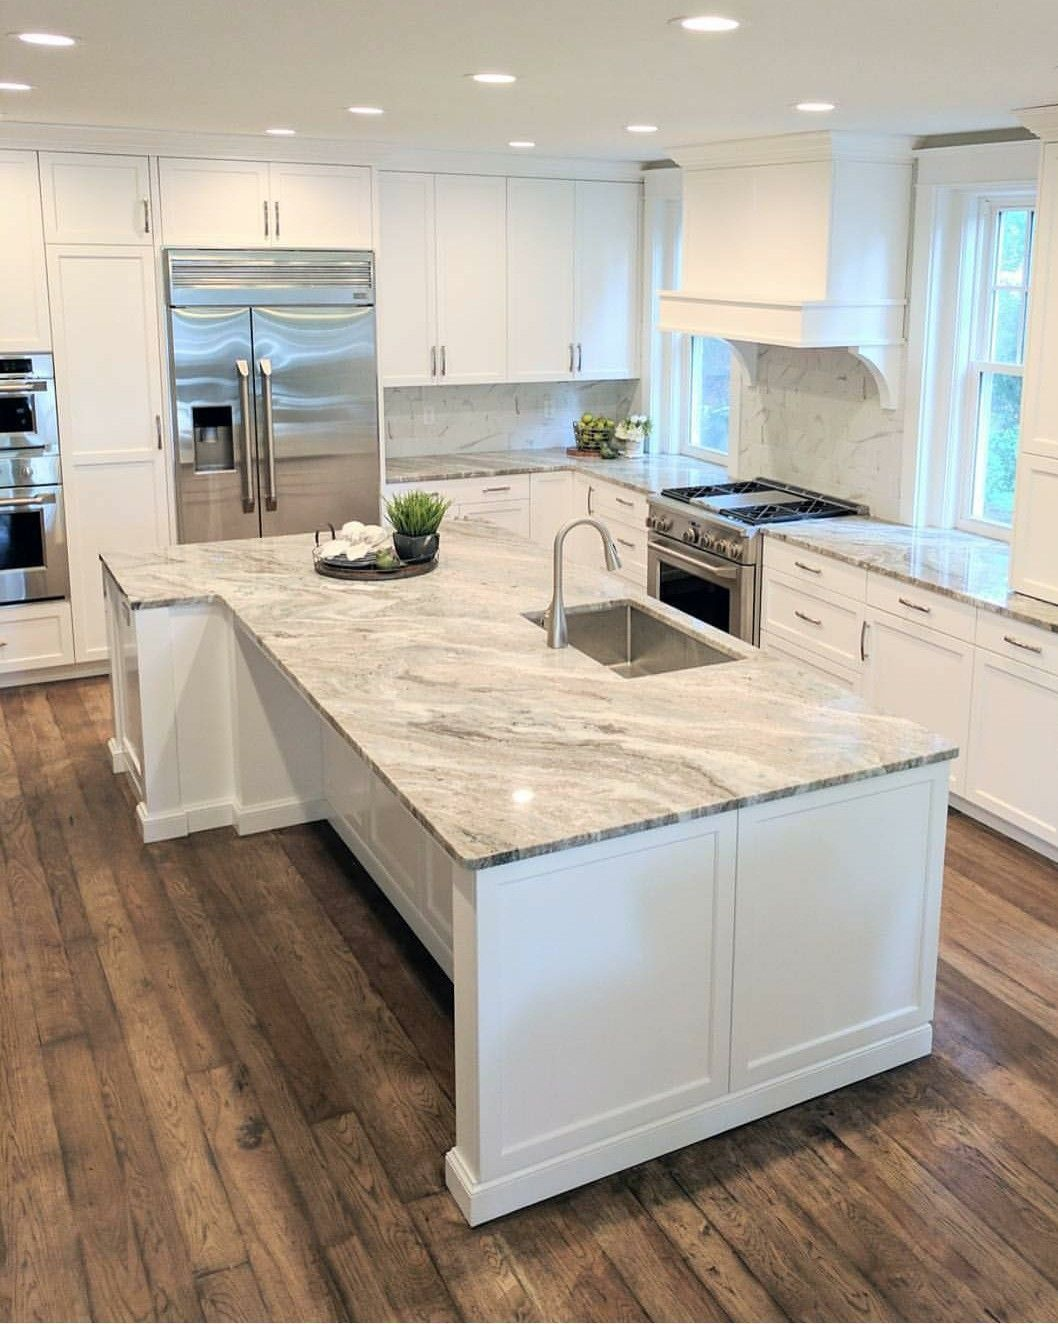 Cabinets Countertops Kitchen Design Small White Kitchen Design Kitchen Design